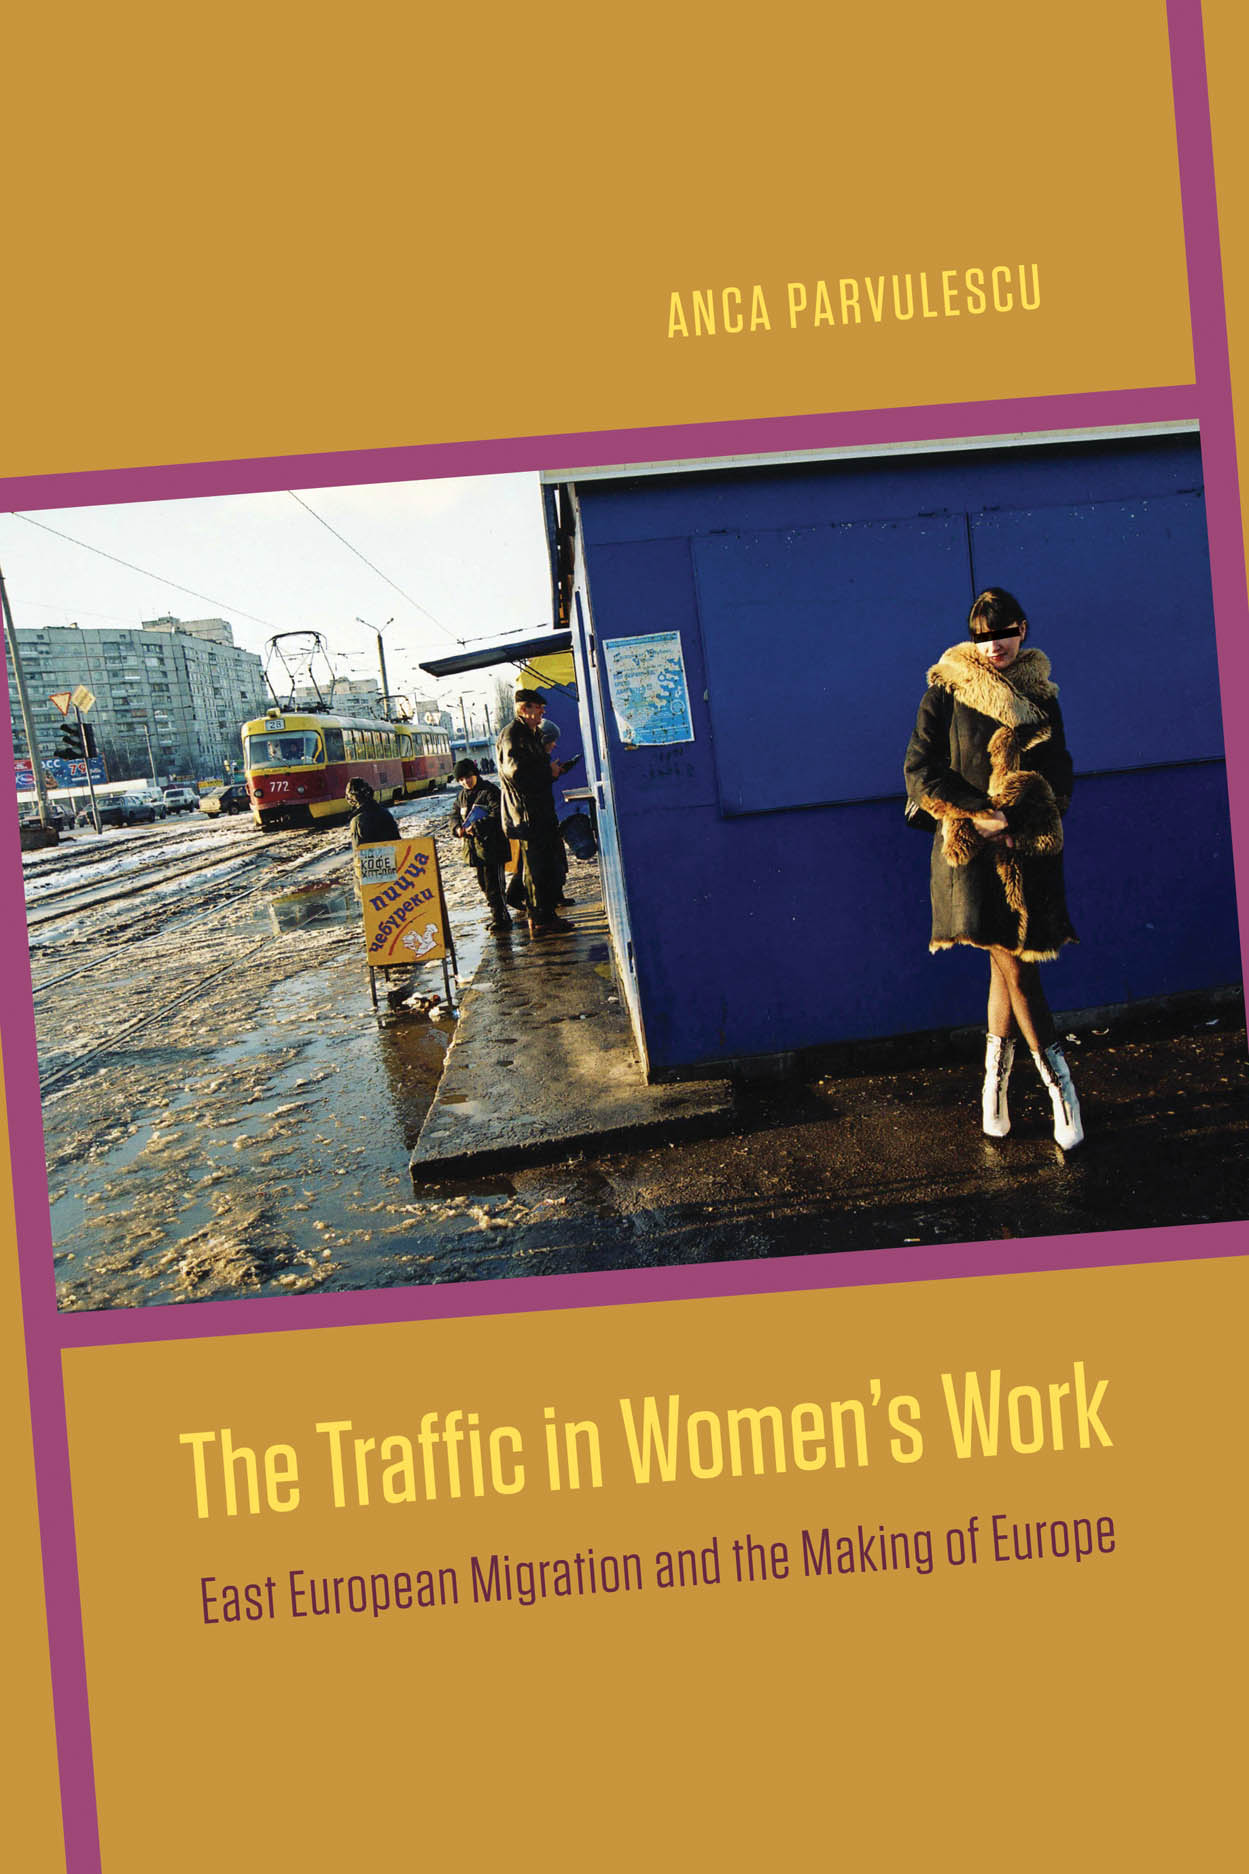 The Traffic in Women's Work